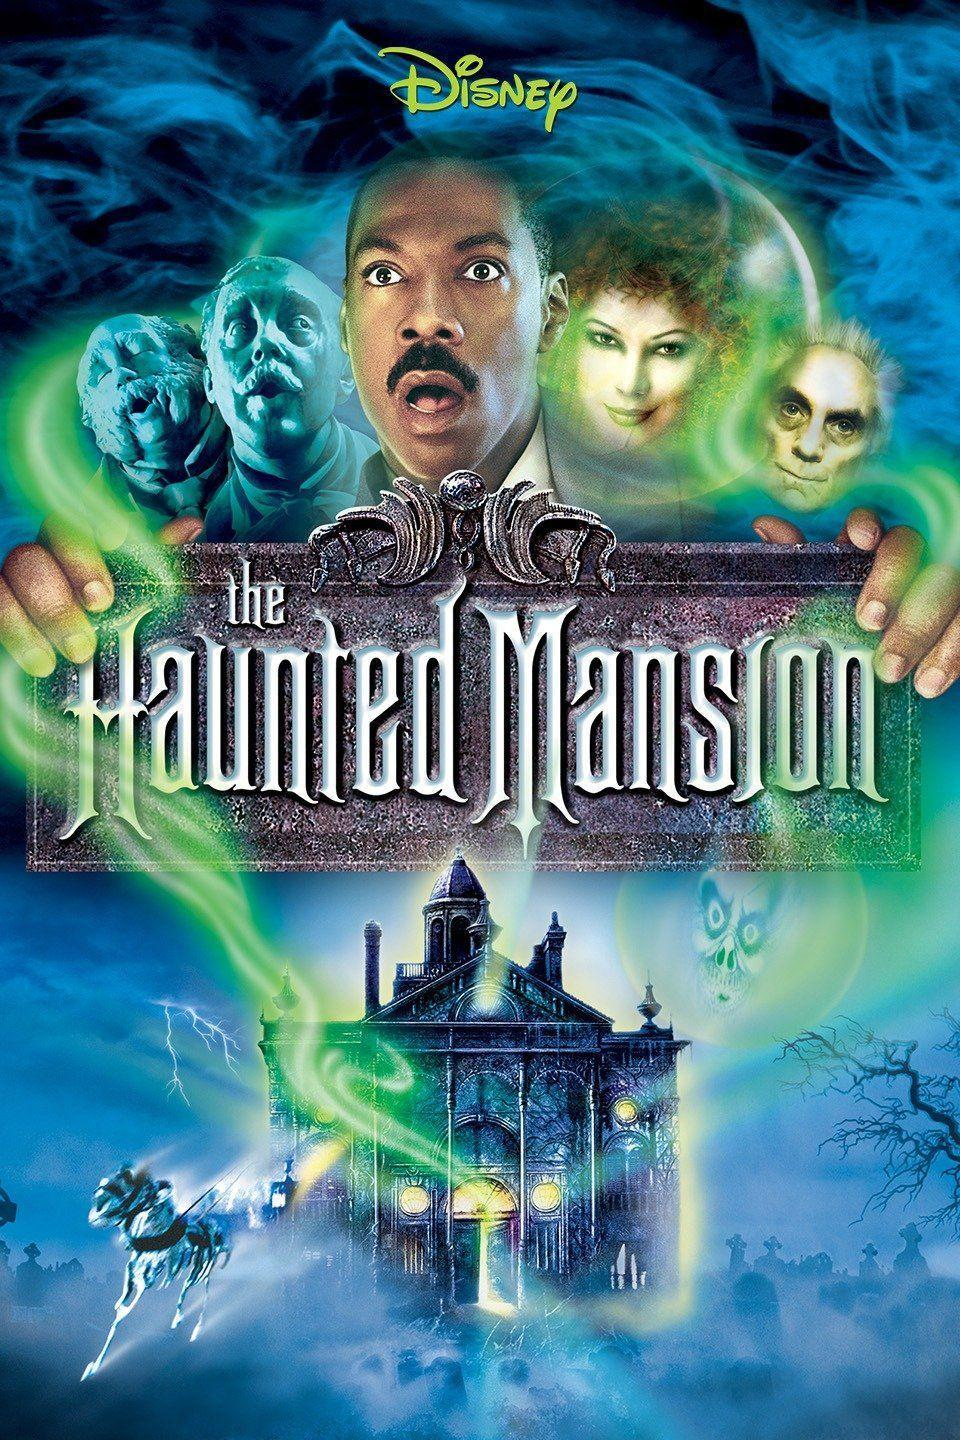 """<p>Funny man Eddie Murphy stars in this spooky tale of a real estate agent who, along with his wife and two children, try to rescue a historic haunted mansion from its cursed existence.</p><p><a class=""""link rapid-noclick-resp"""" href=""""https://go.redirectingat.com?id=74968X1596630&url=https%3A%2F%2Fwww.disneyplus.com%2Fmovies%2Fthe-haunted-mansion%2F6RcGqdevf15z&sref=https%3A%2F%2Fwww.countryliving.com%2Flife%2Fentertainment%2Fg32748070%2Fdisney-plus-halloween-movies%2F"""" rel=""""nofollow noopener"""" target=""""_blank"""" data-ylk=""""slk:WATCH NOW"""">WATCH NOW</a></p>"""